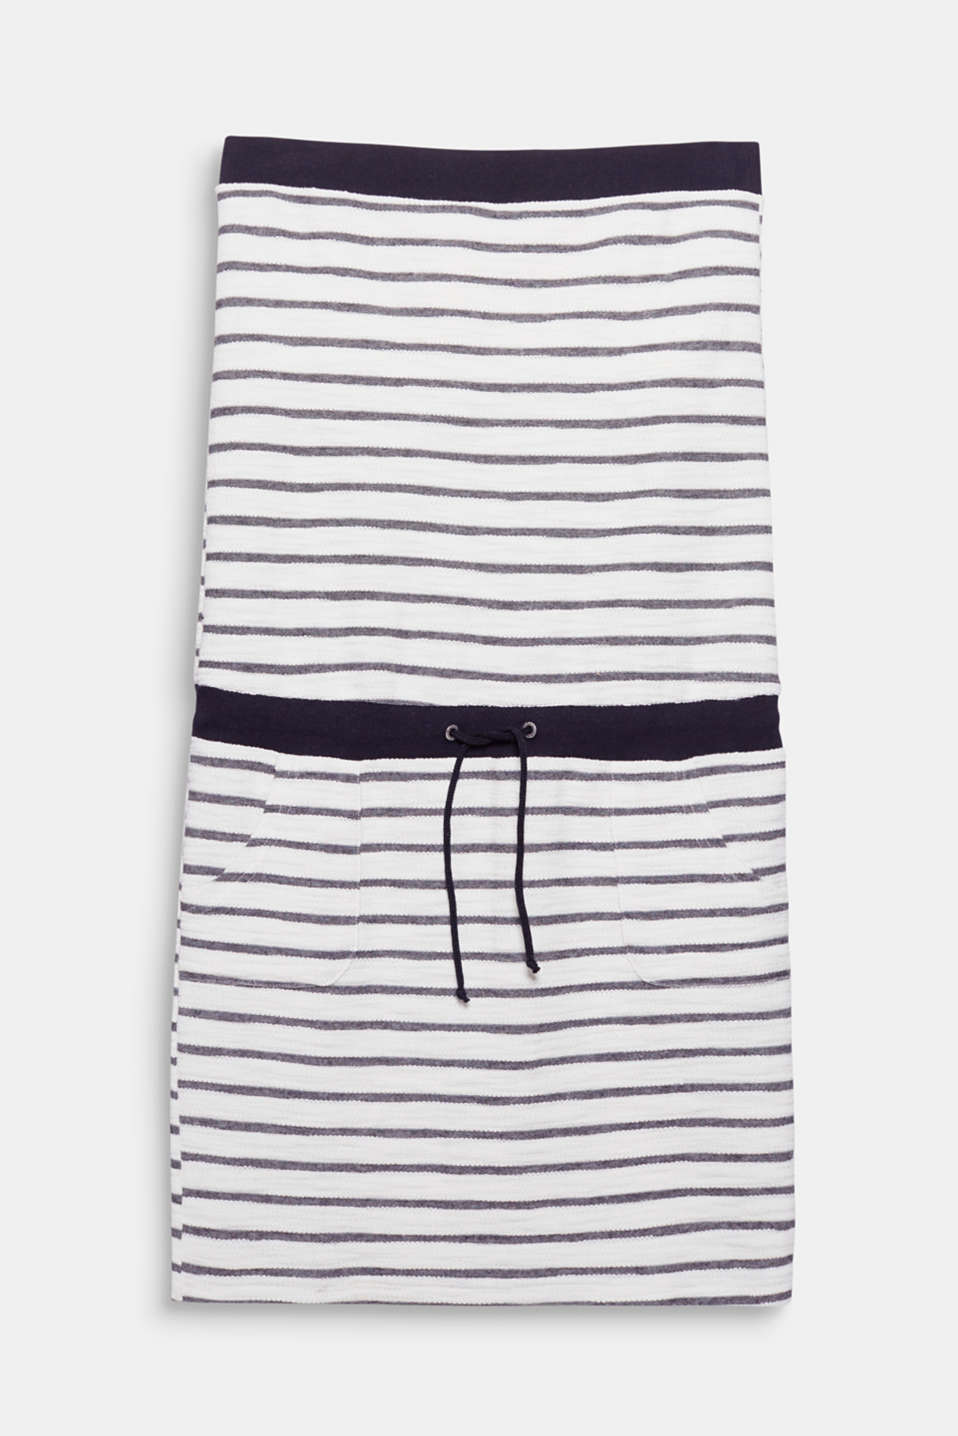 This simple, towelling dress in a bandeau design featuring a drawstring waist is on in a jiffy!